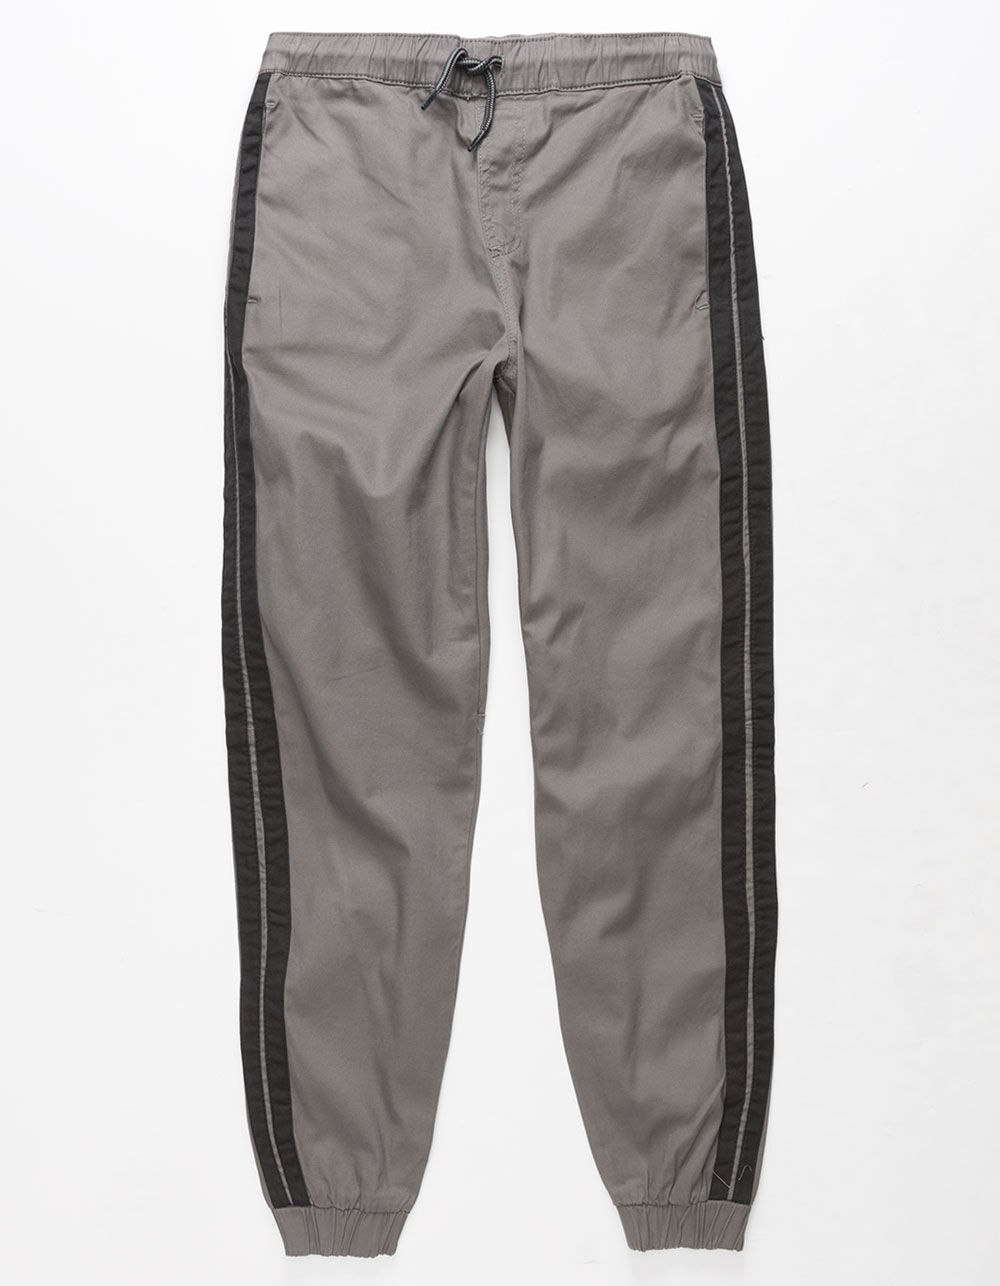 EAST POINTE Nolan Boys Jogger Pants